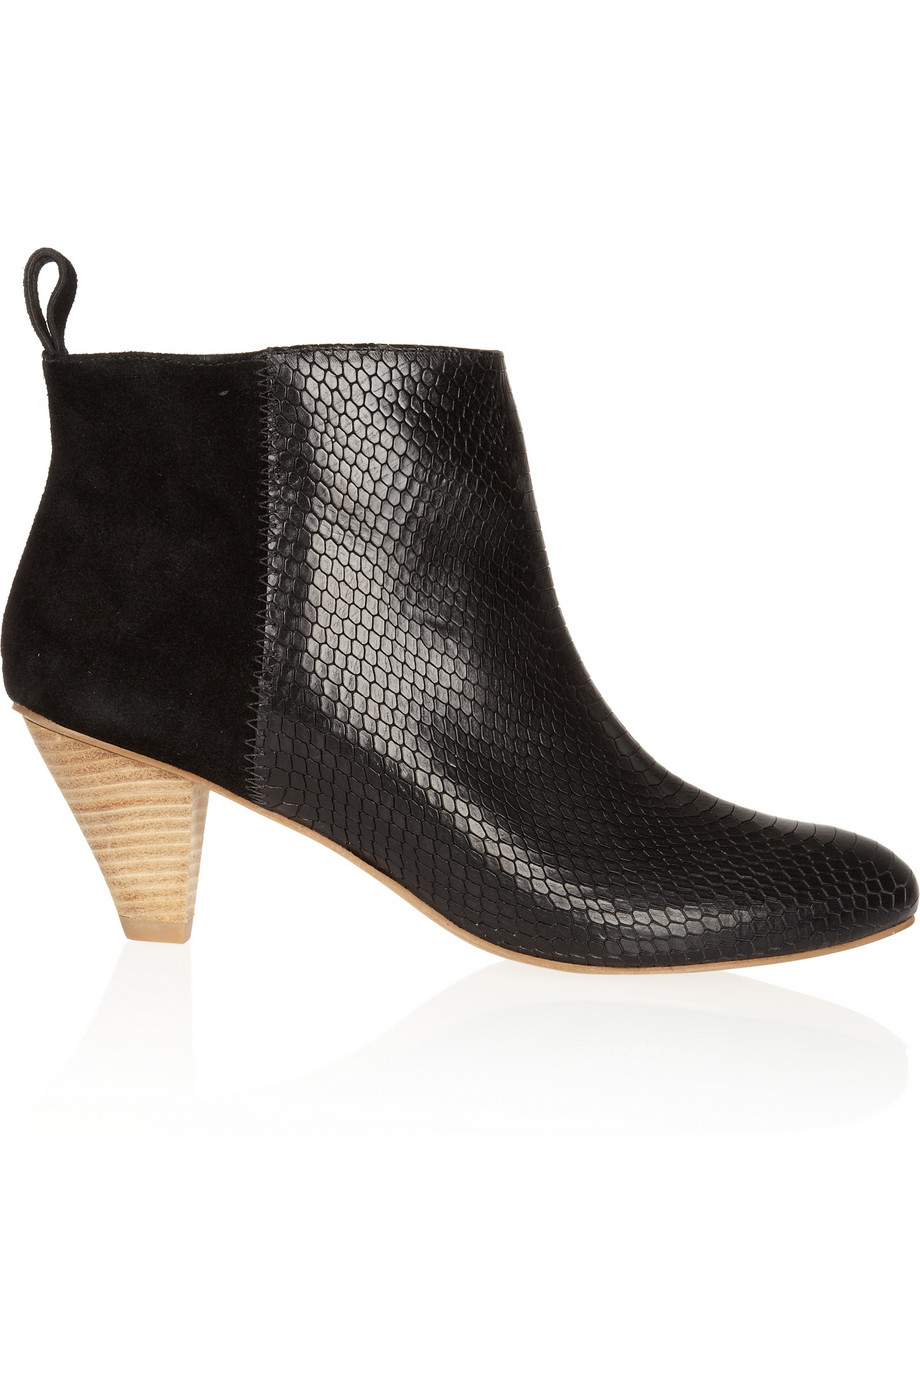 Twelfth Street Cynthia Vincent Garyn Crocodileeffect Leather and Suede Ankle Boots in Black